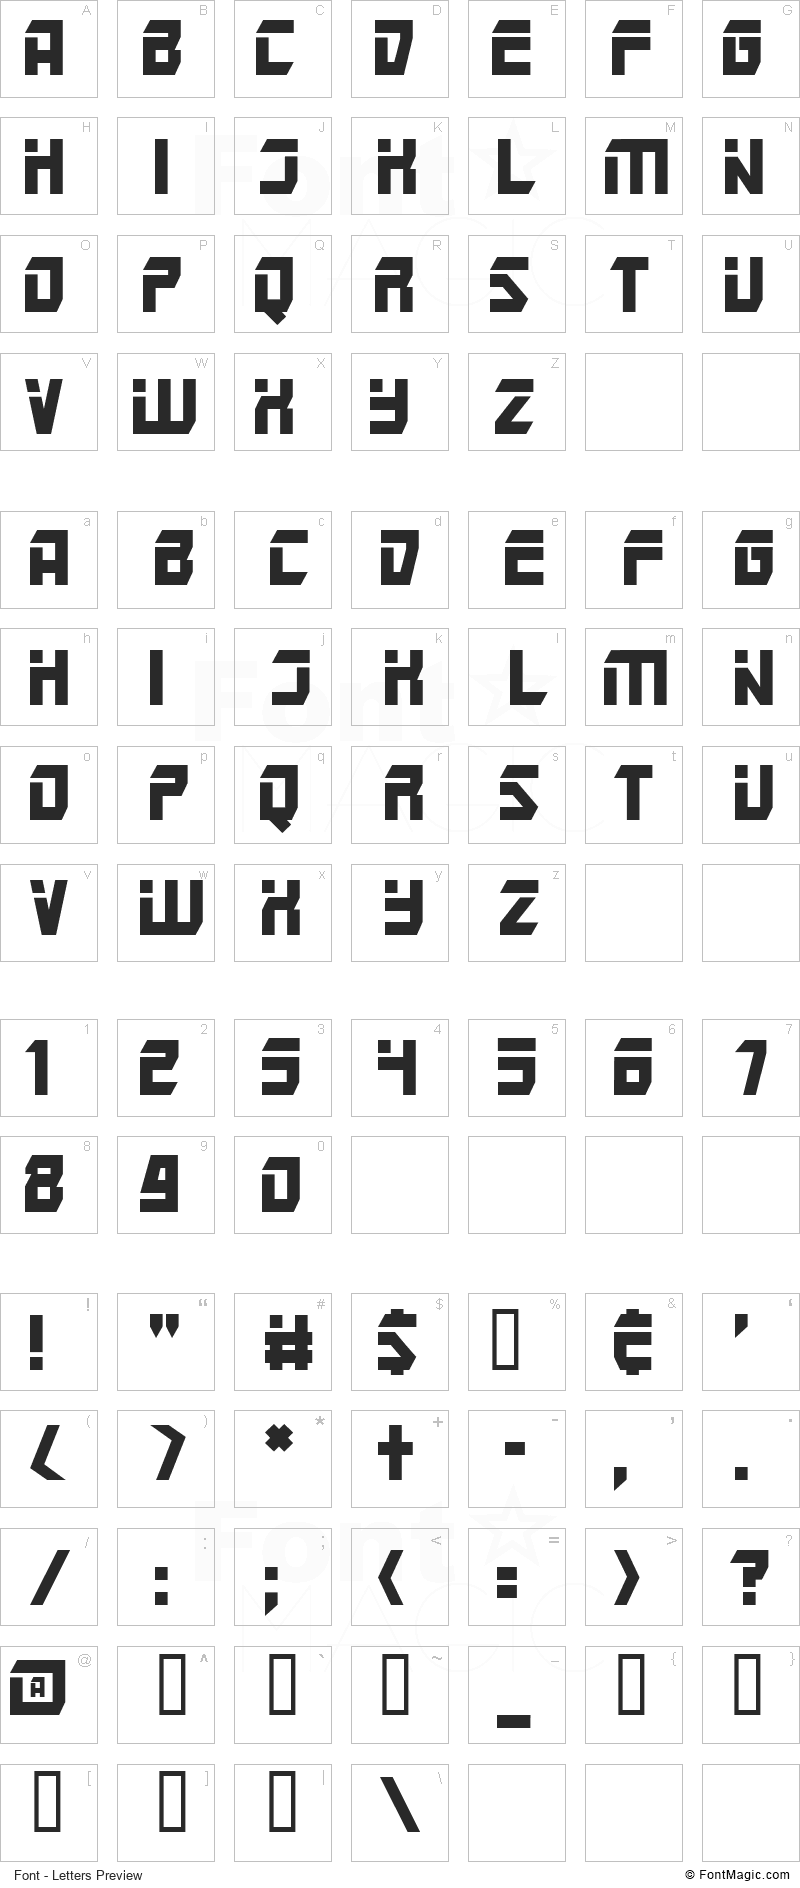 Mars Police Font - All Latters Preview Chart